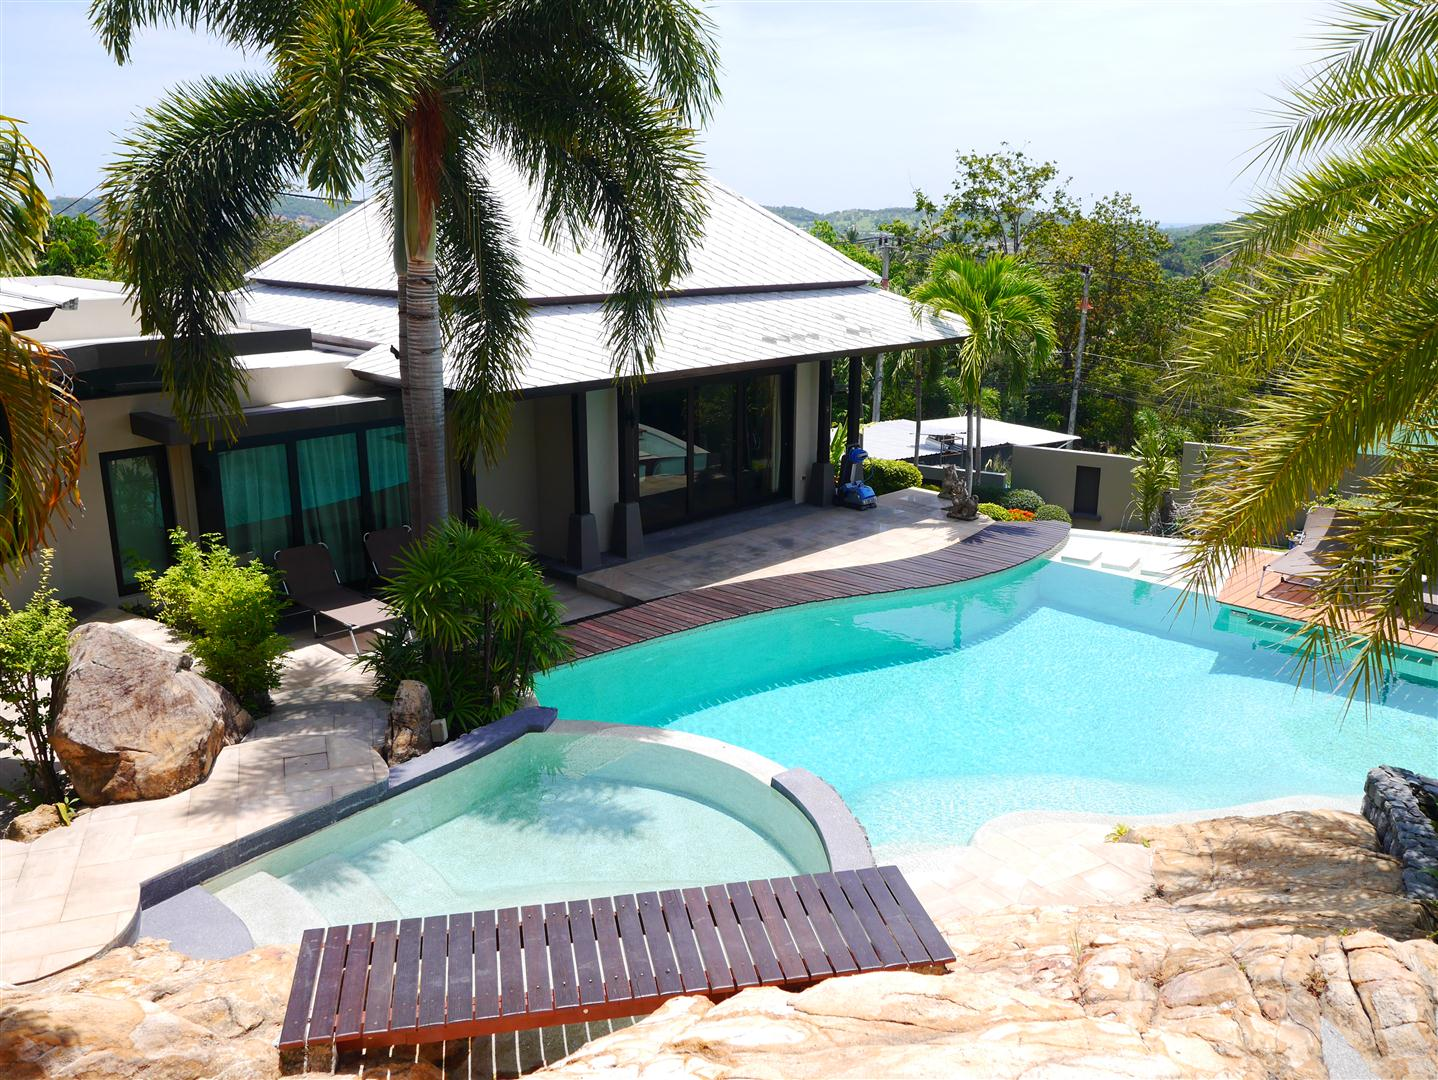 Villa with resort style pool